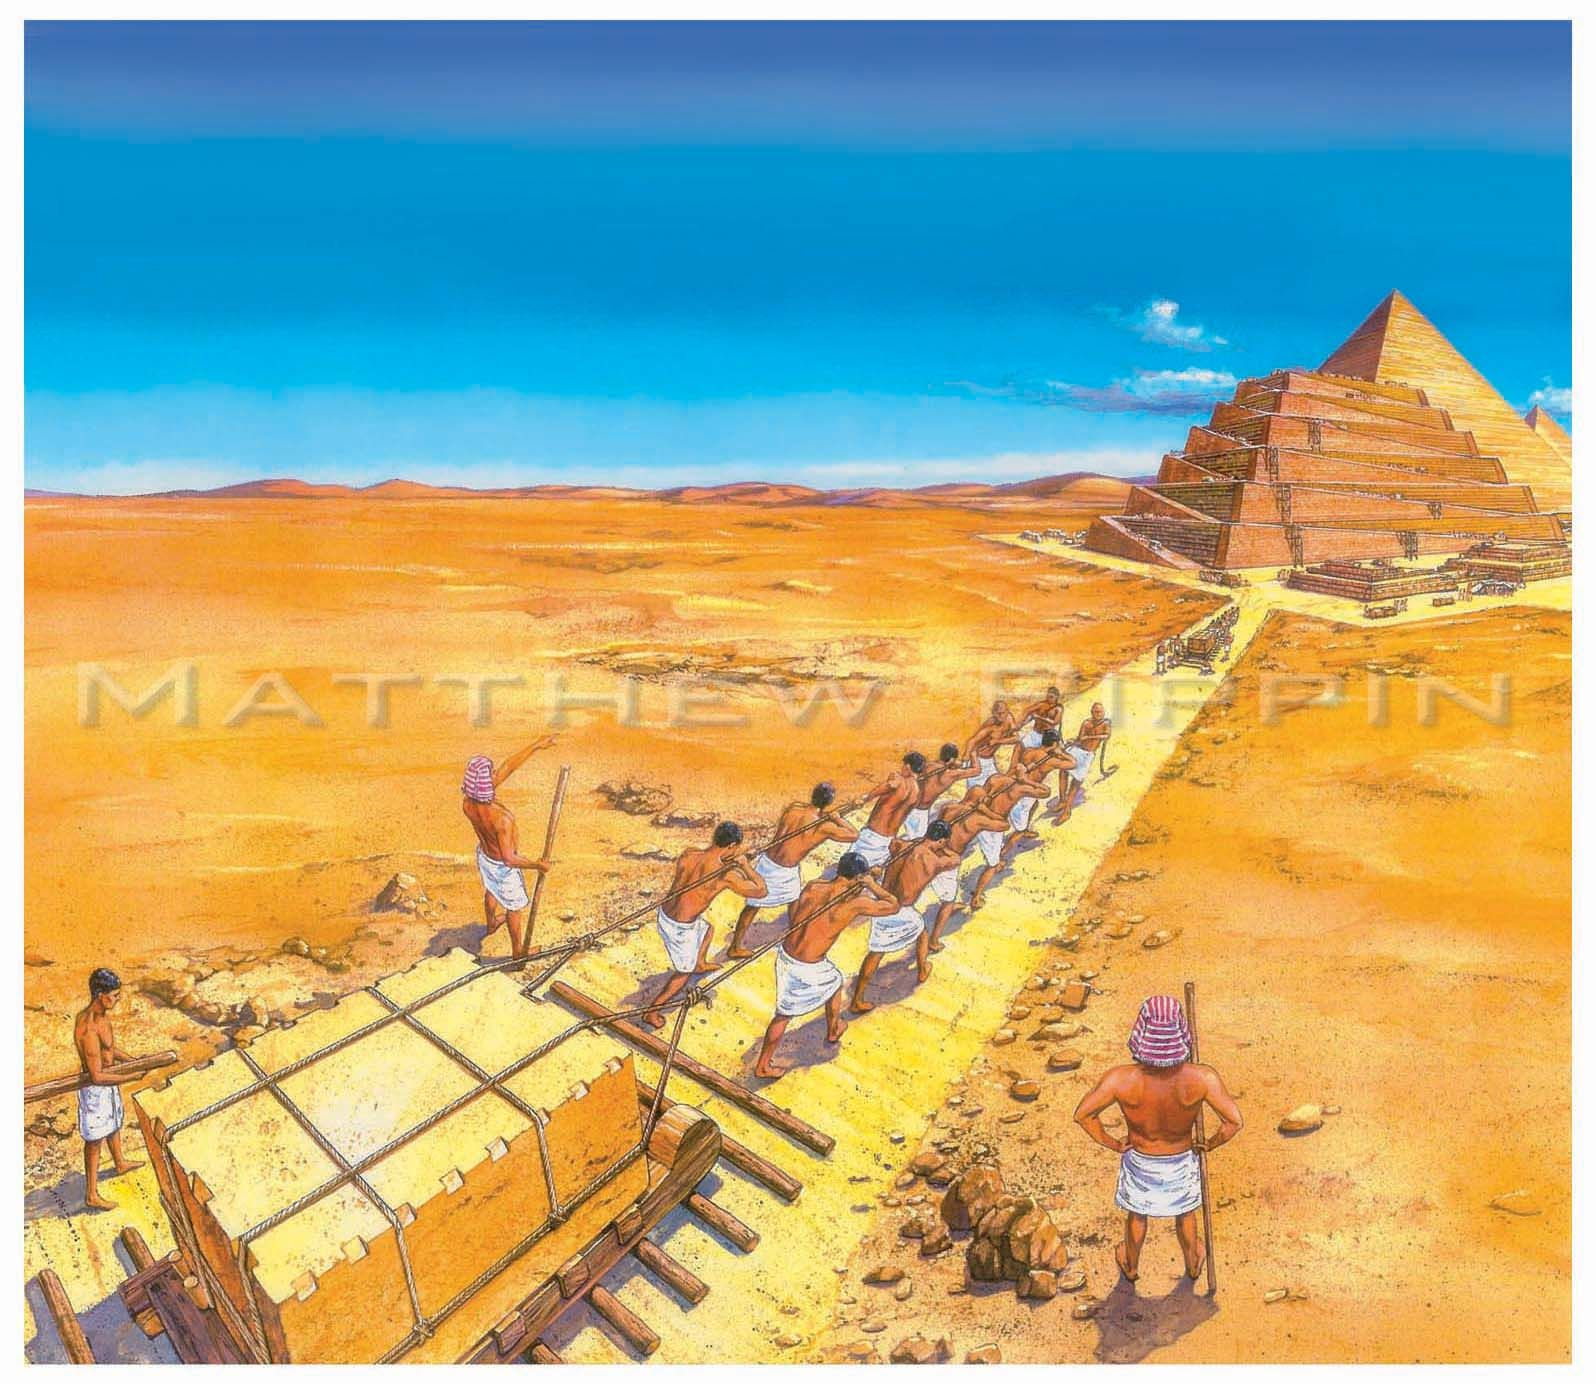 an introduction to the construction of the pyramids in ancient egypt Introduction to ancient egyptian art pyramid:an ancient massive construction with a square or the rise of ancient egypt included building and.